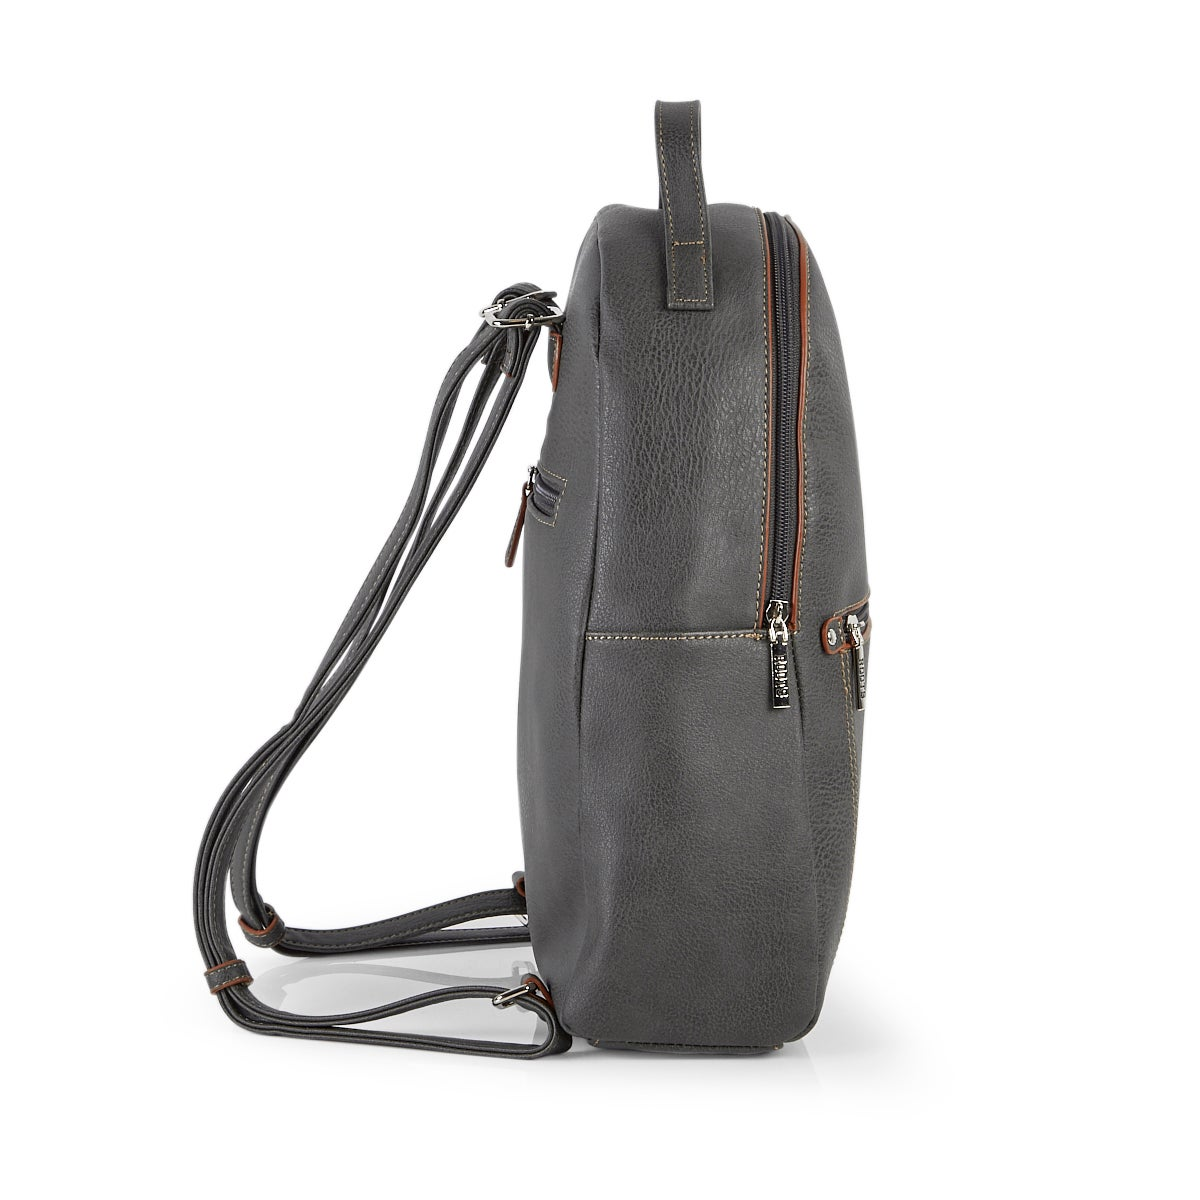 Lds Roots73 grey painted edge backpack